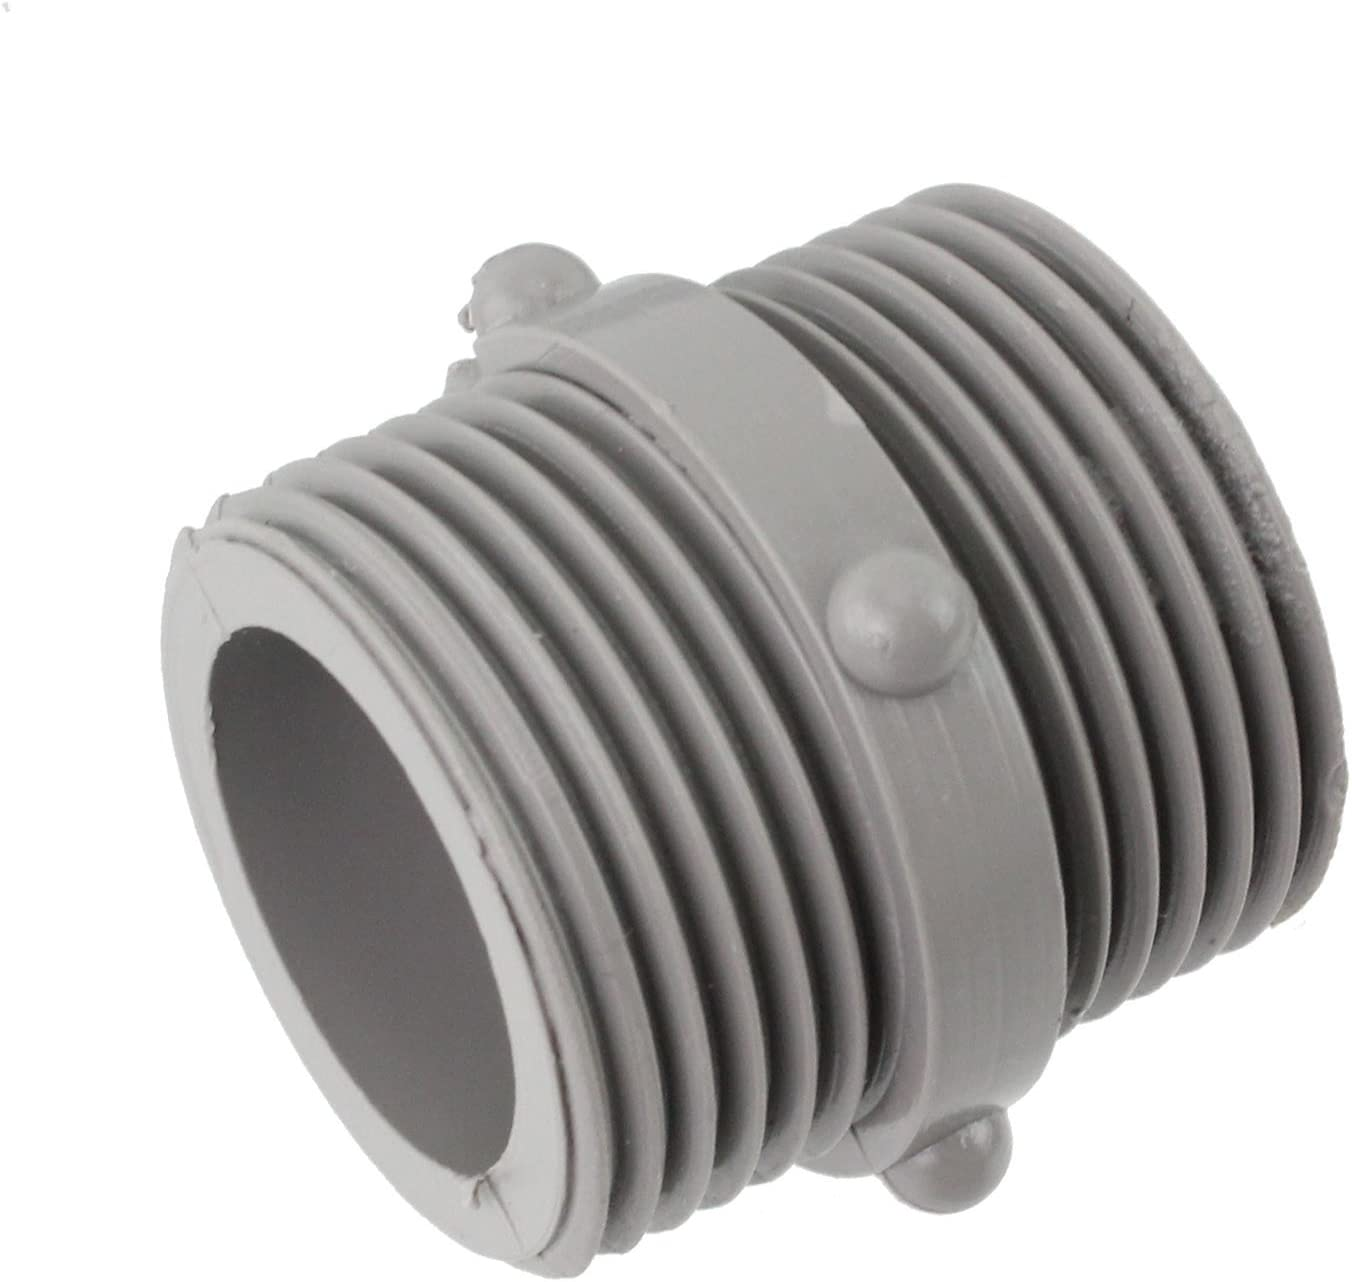 2.5M SPARES2GO Straight End Cold Water Fill Inlet Hose Extension for Indesit Washing Machine